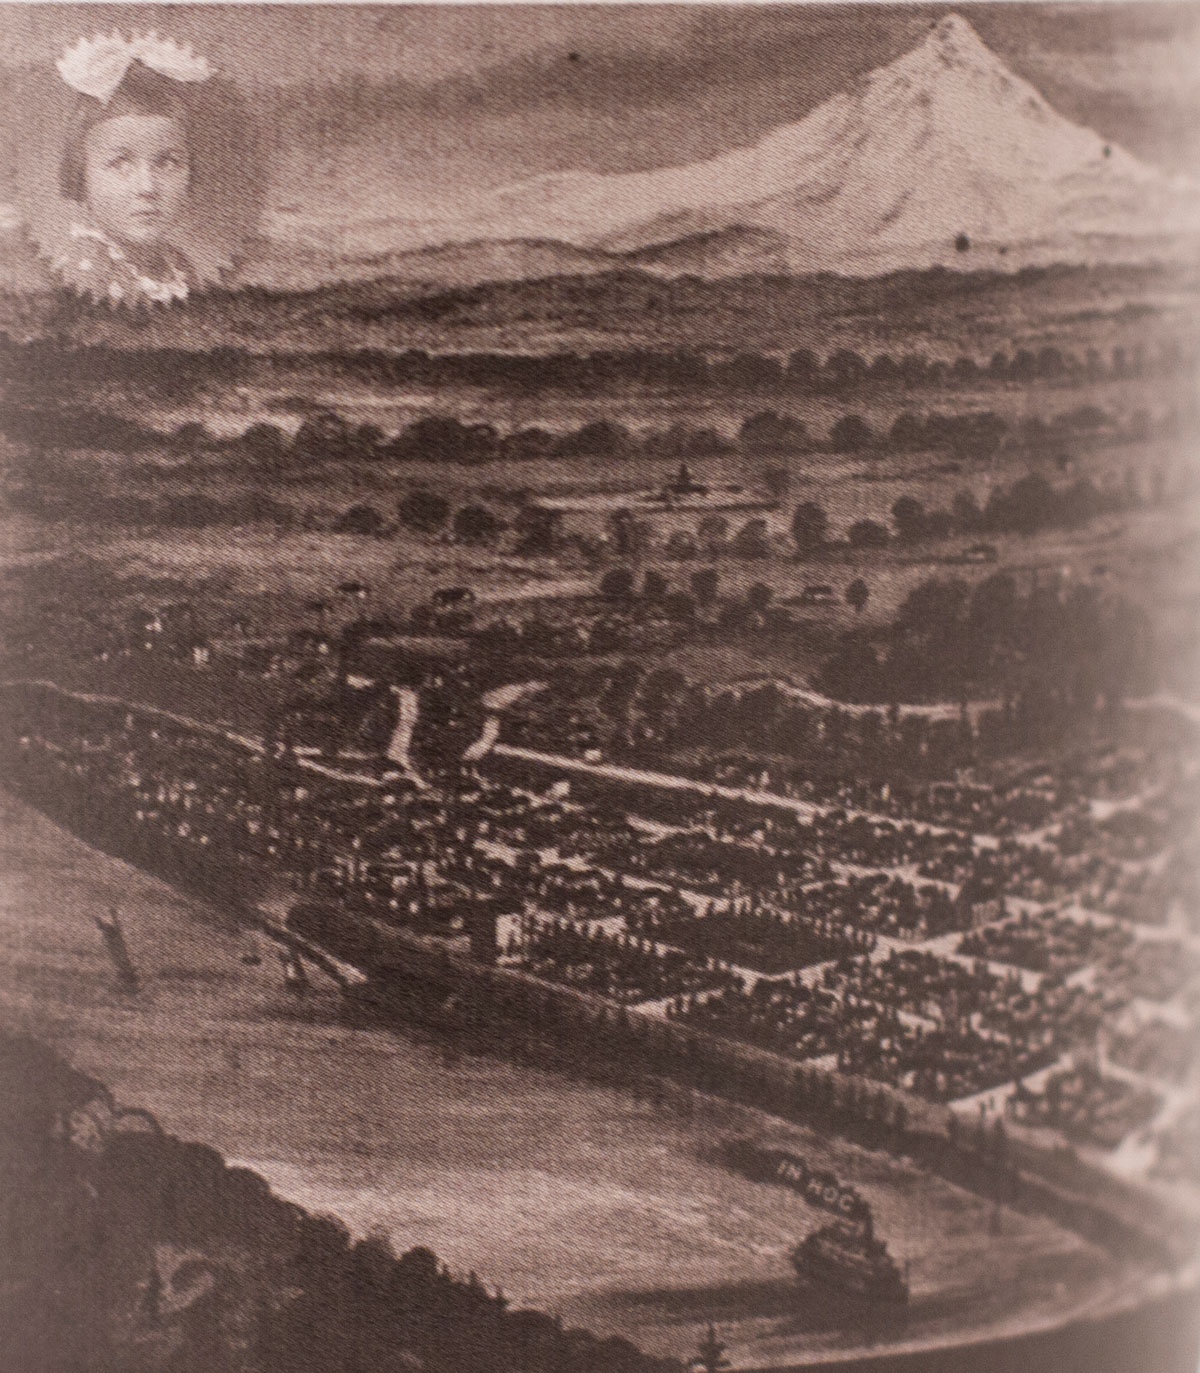 Historical map of Salem, Oregon with city and river in foreground and mountain in background